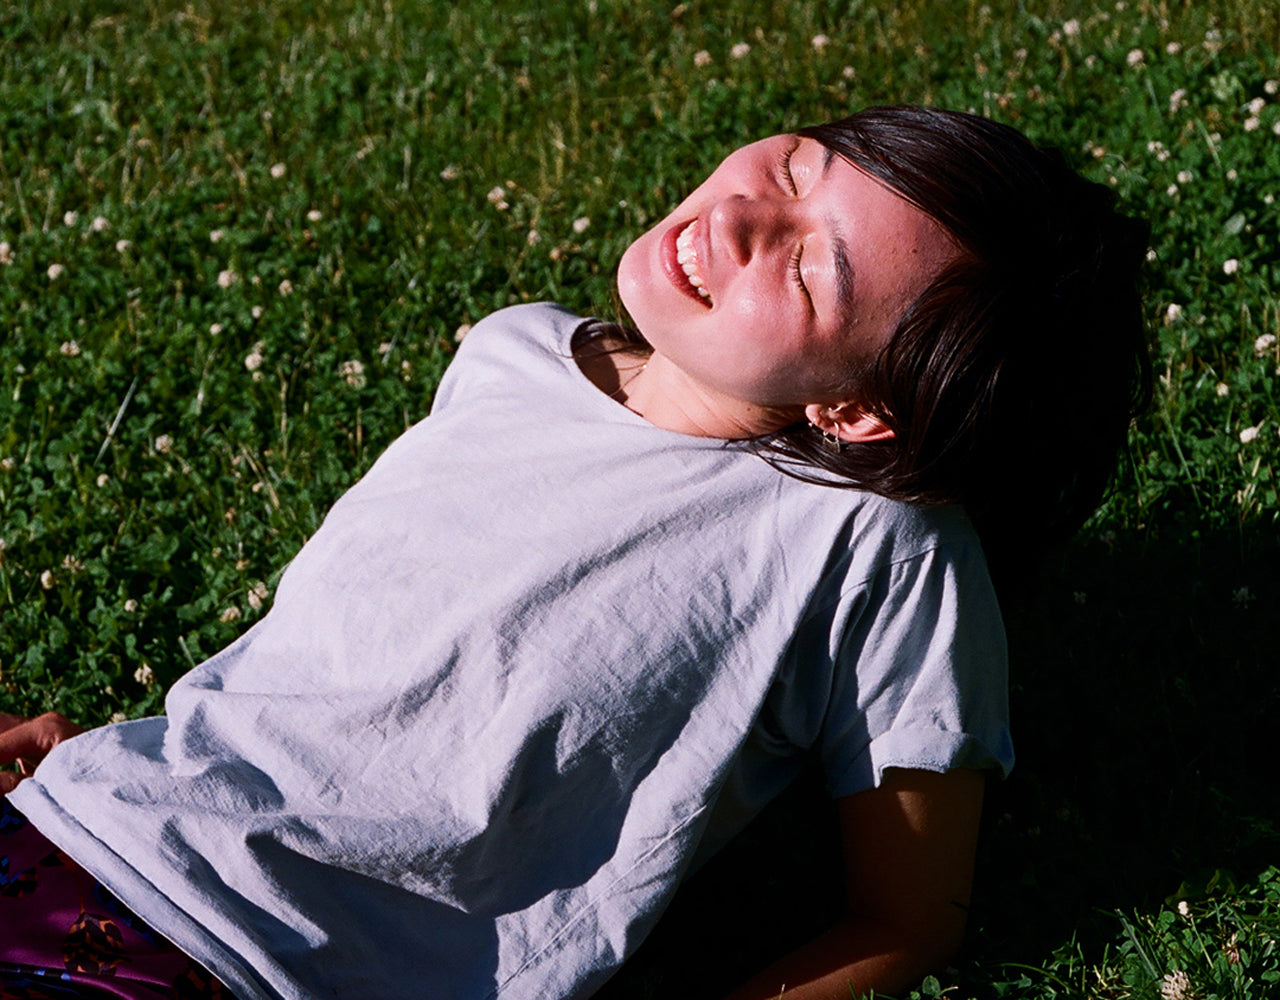 Person with black hair and a white t-shirt lying on the their back on the grass in full sun